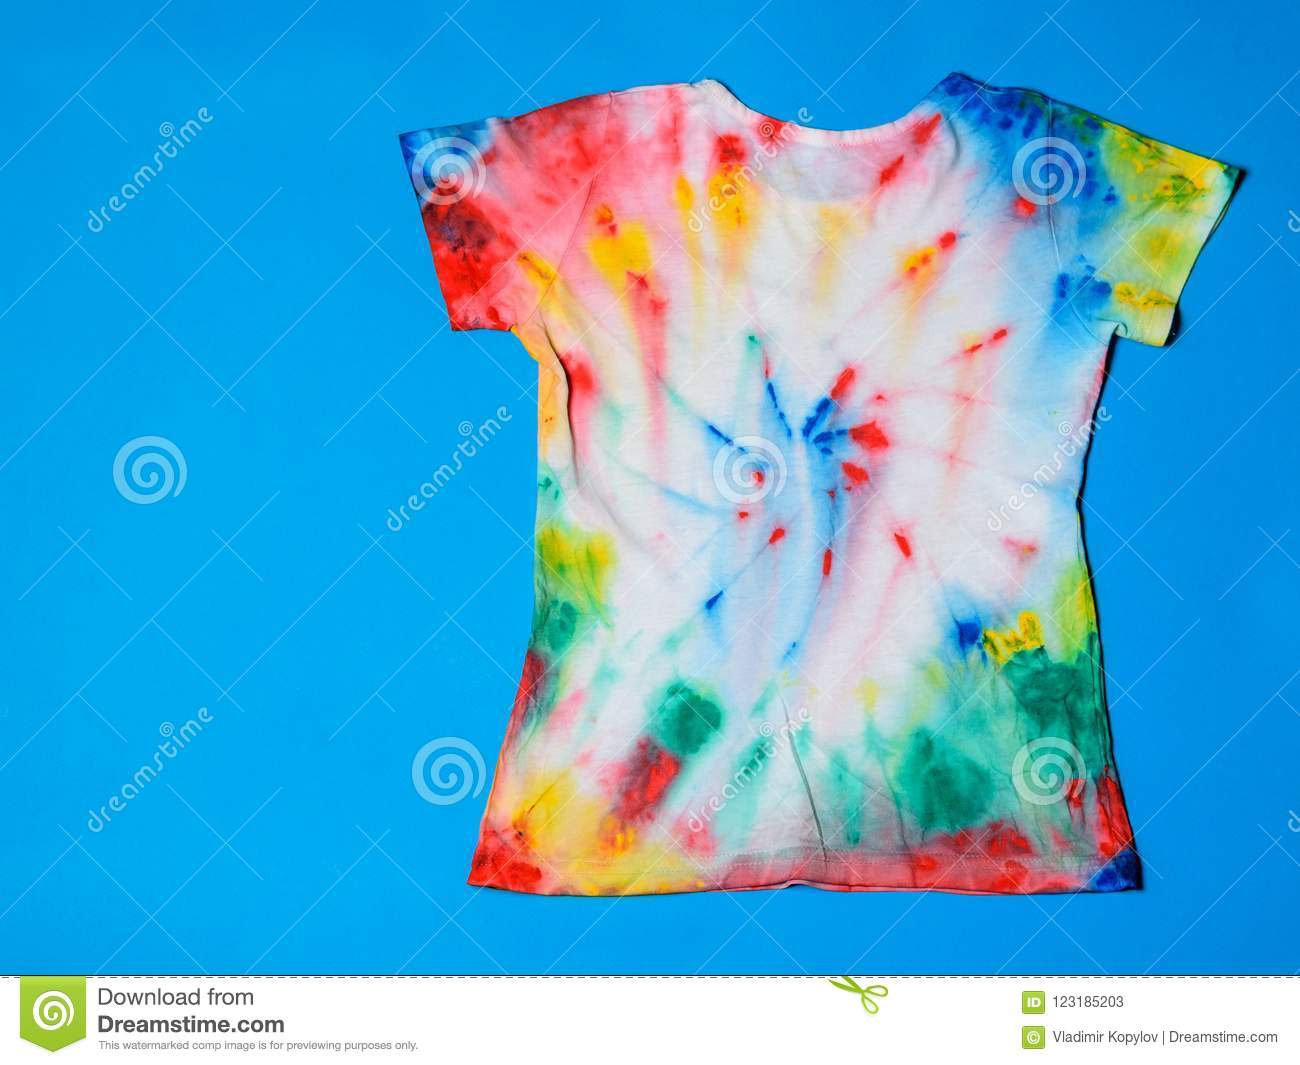 09404cd6 T-shirt Painted In Tie Dye Style On A Blue Background. Flat Lay. The ...